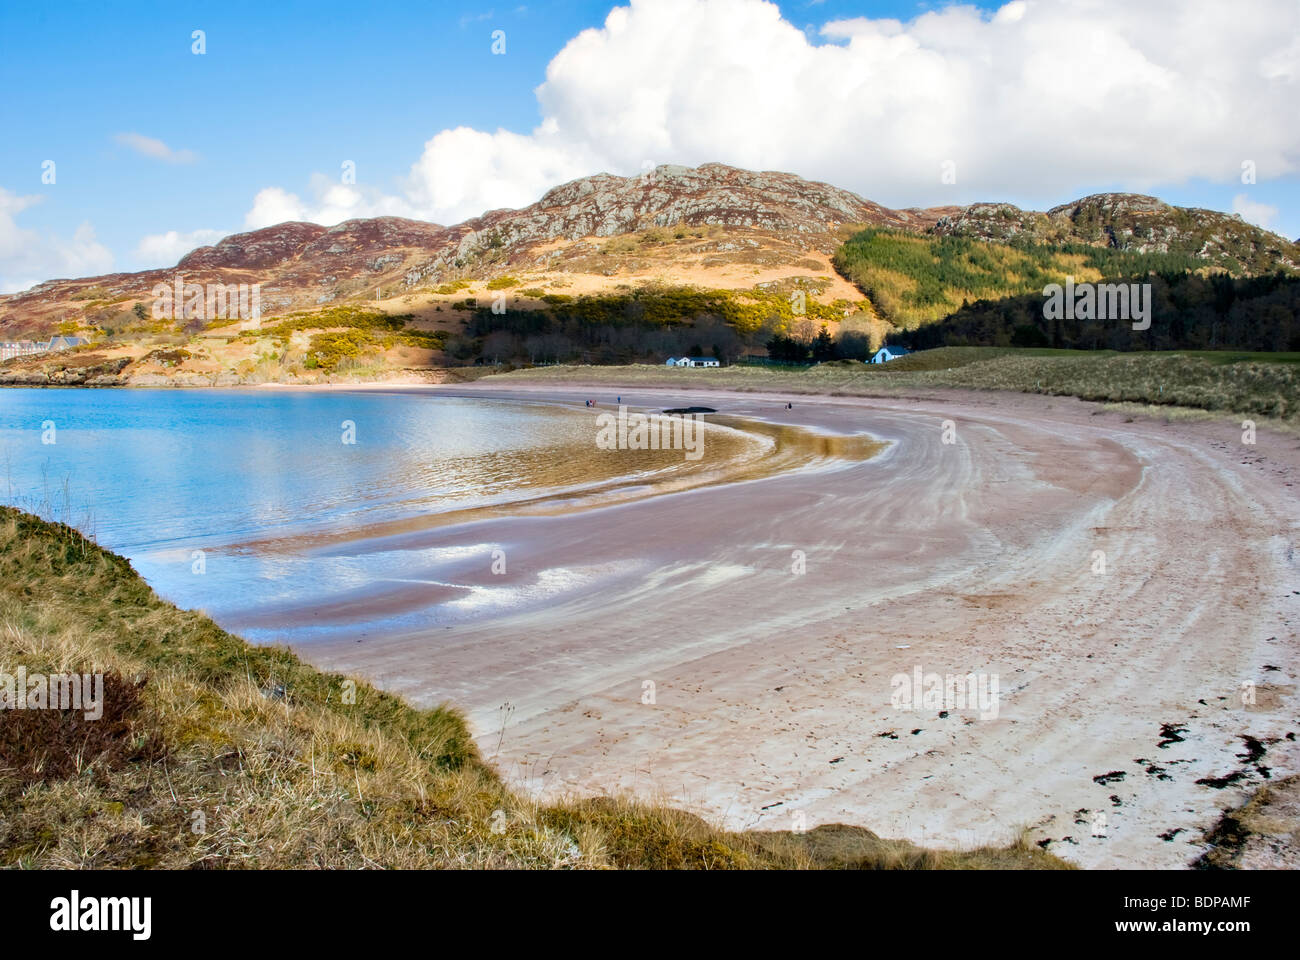 Sandy beach and bay at Gairloch, Wester Ross, Scotland on a bright sunny, spring day with blue sky  and sea - Stock Image